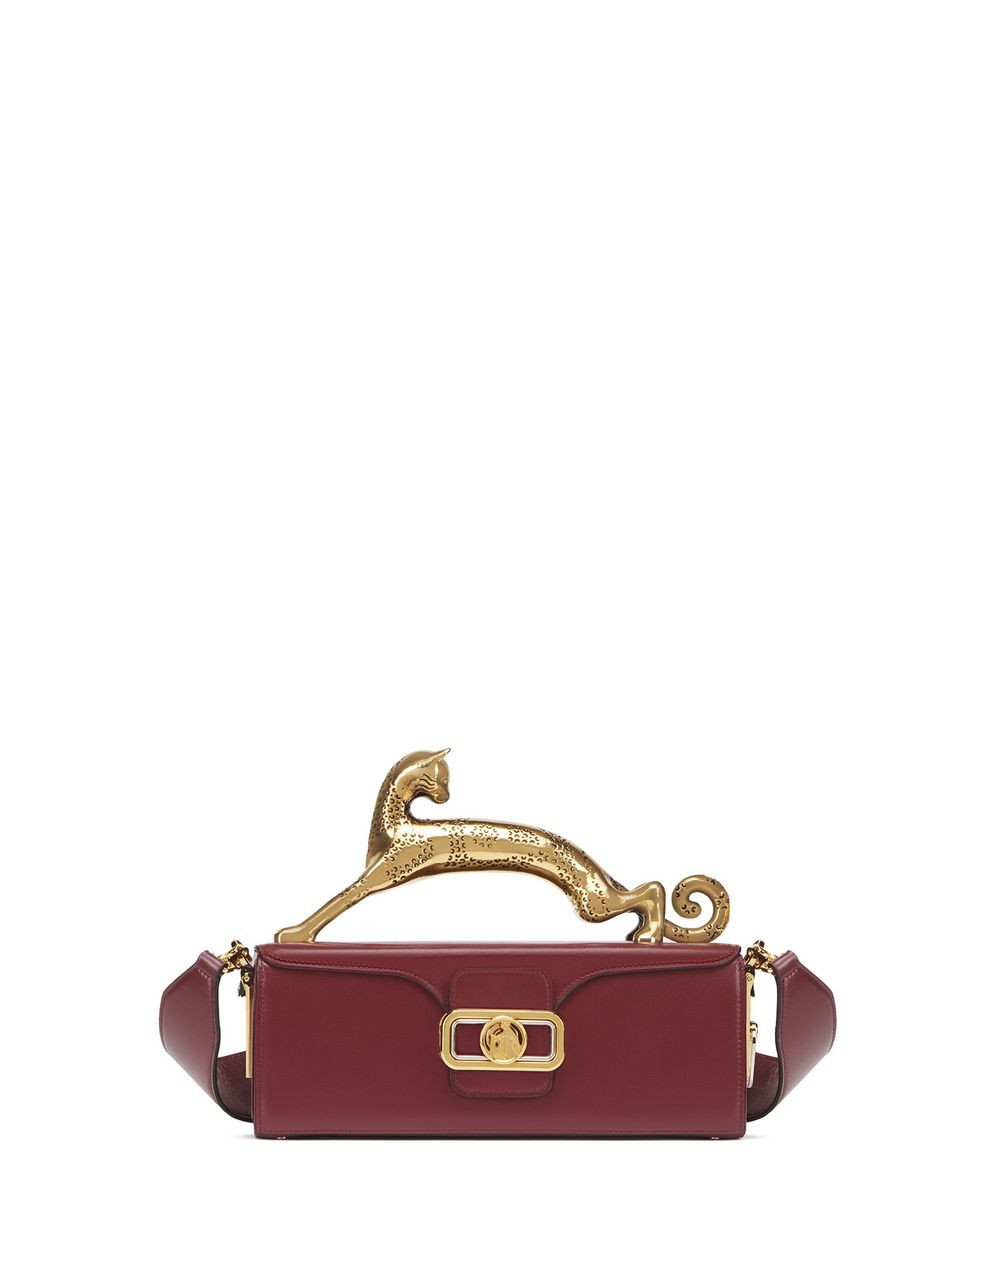 PENCIL CAT BAG IN BOX CALF - Lanvin